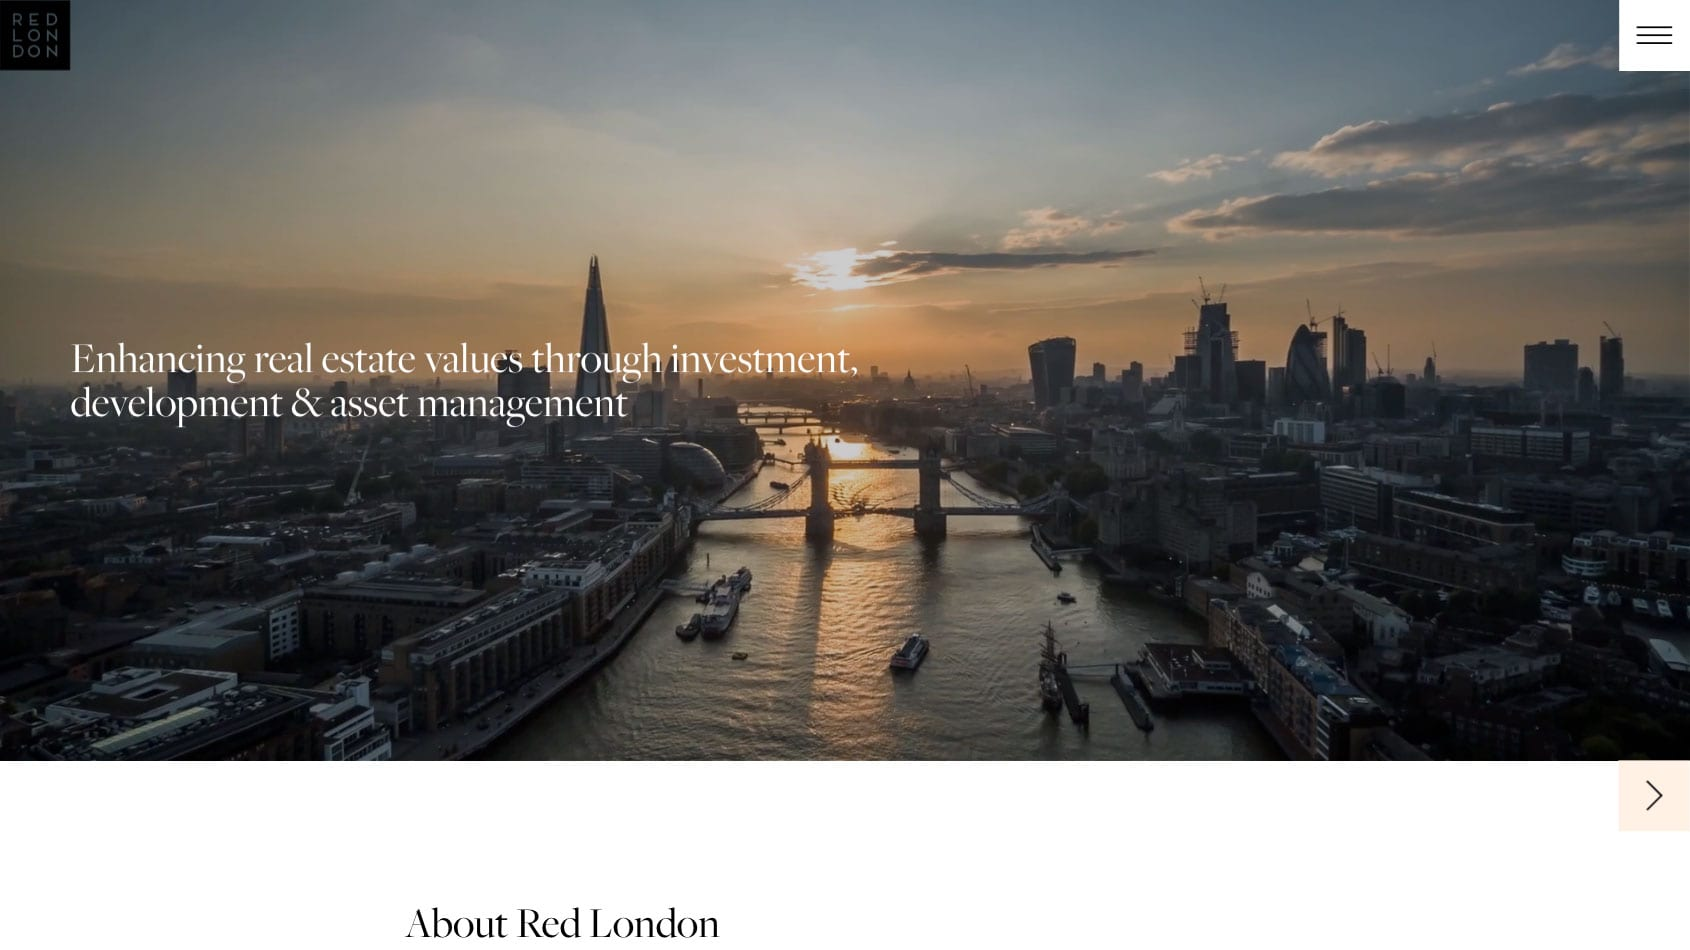 Home_Red_London_Enhancing_Real_Estate_values_through_investment_development_asset_management